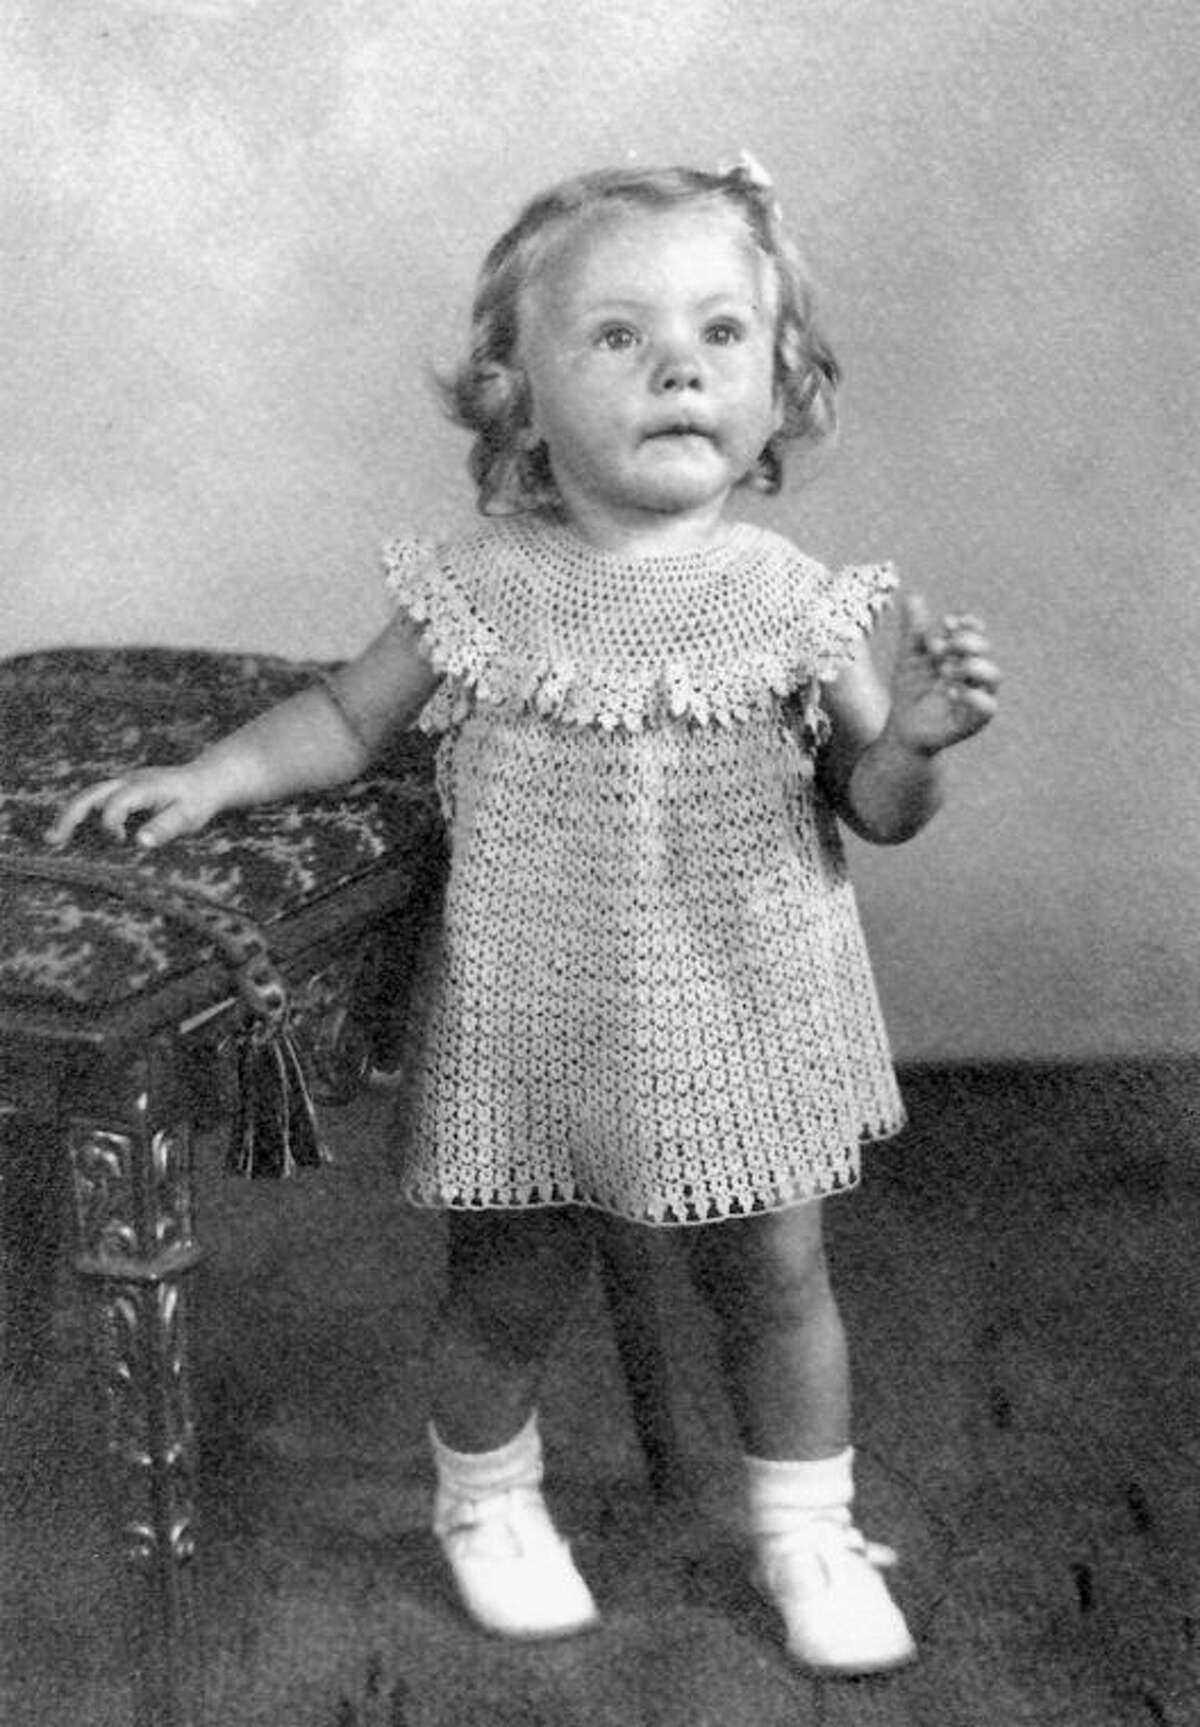 This is Jean Pifher, the first daughter born to Raymond and Dora Pifher in 1938. She was just a year old when the tornado struck.